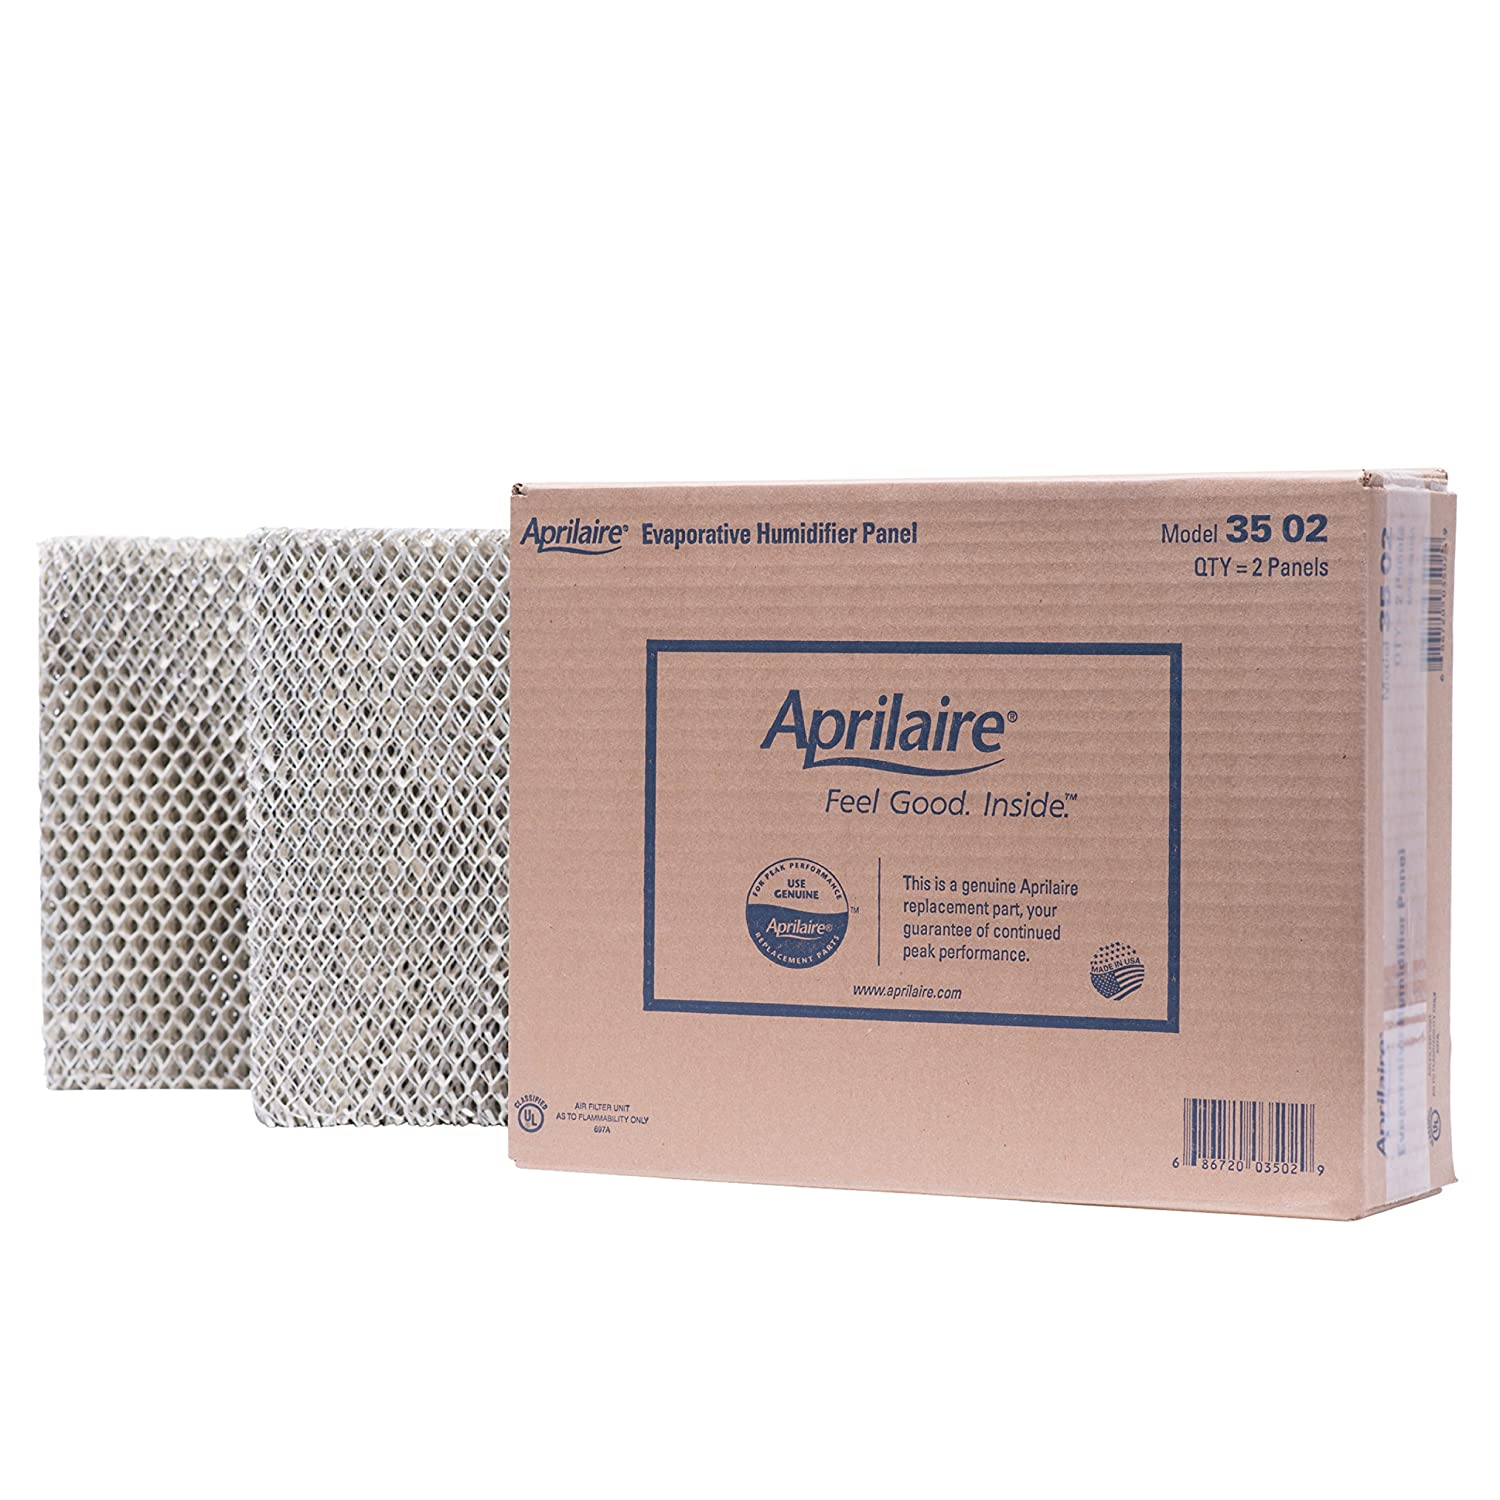 Aprilaire 35 Water Panel, Fits Humidifiers 600, 600A, 600M, 700, 700A, 700M, 760, 768, 350, 360, 560 and 568, Pack of 2 35 02